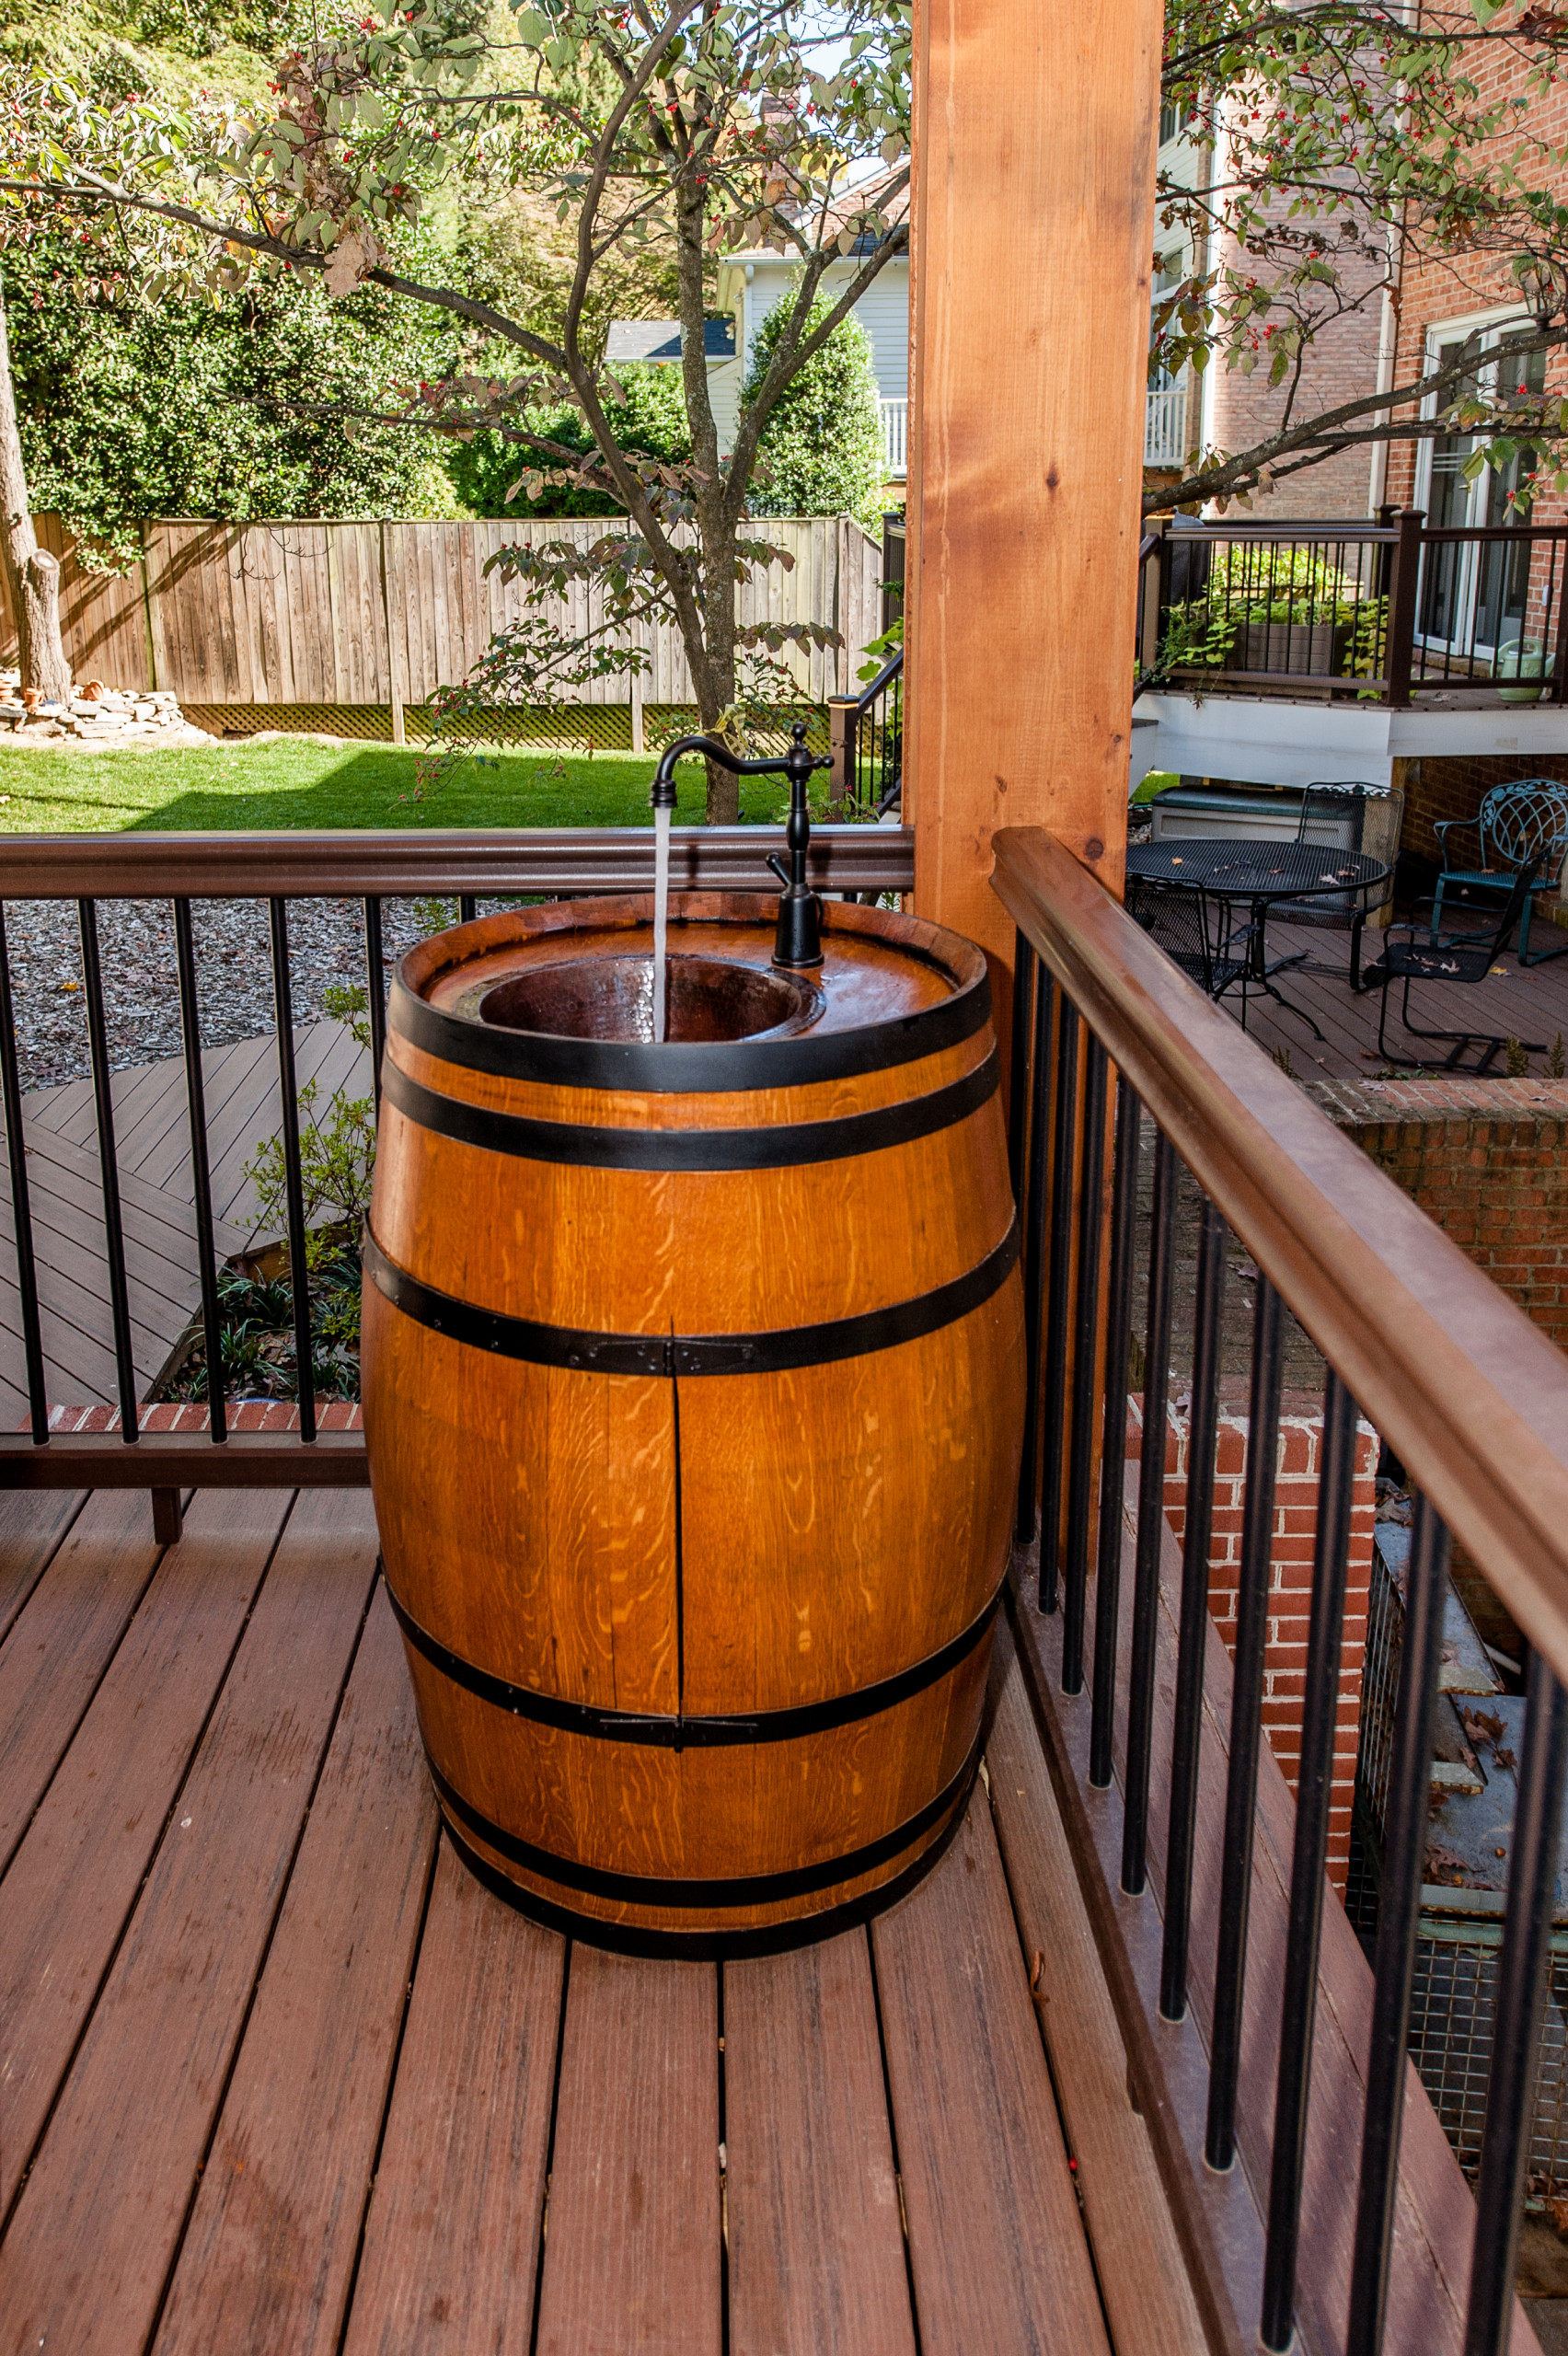 Custom made barrel for draft bear or desired drink of choice, while entertaining